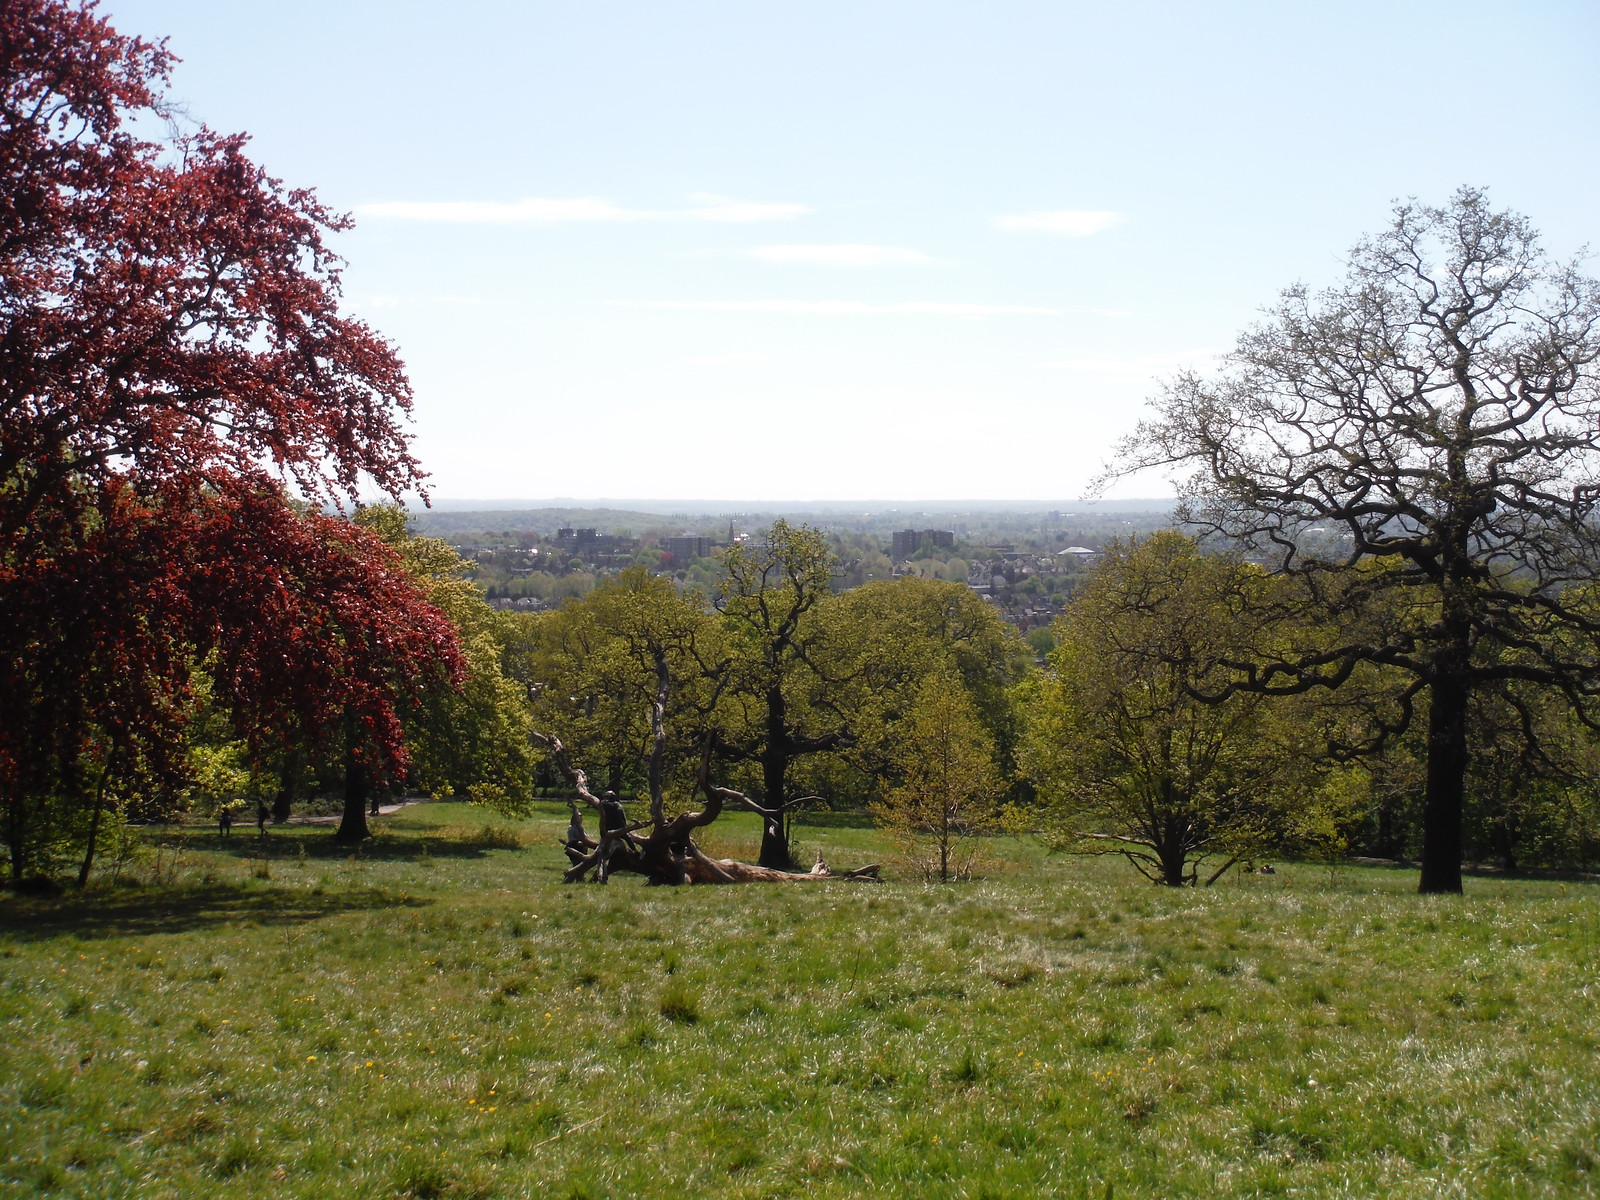 Meadow below Castle Wood, Views of Eltham SWC Short Walk 44 - Oxleas Wood and Shooters Hill (Falconwood Circular)